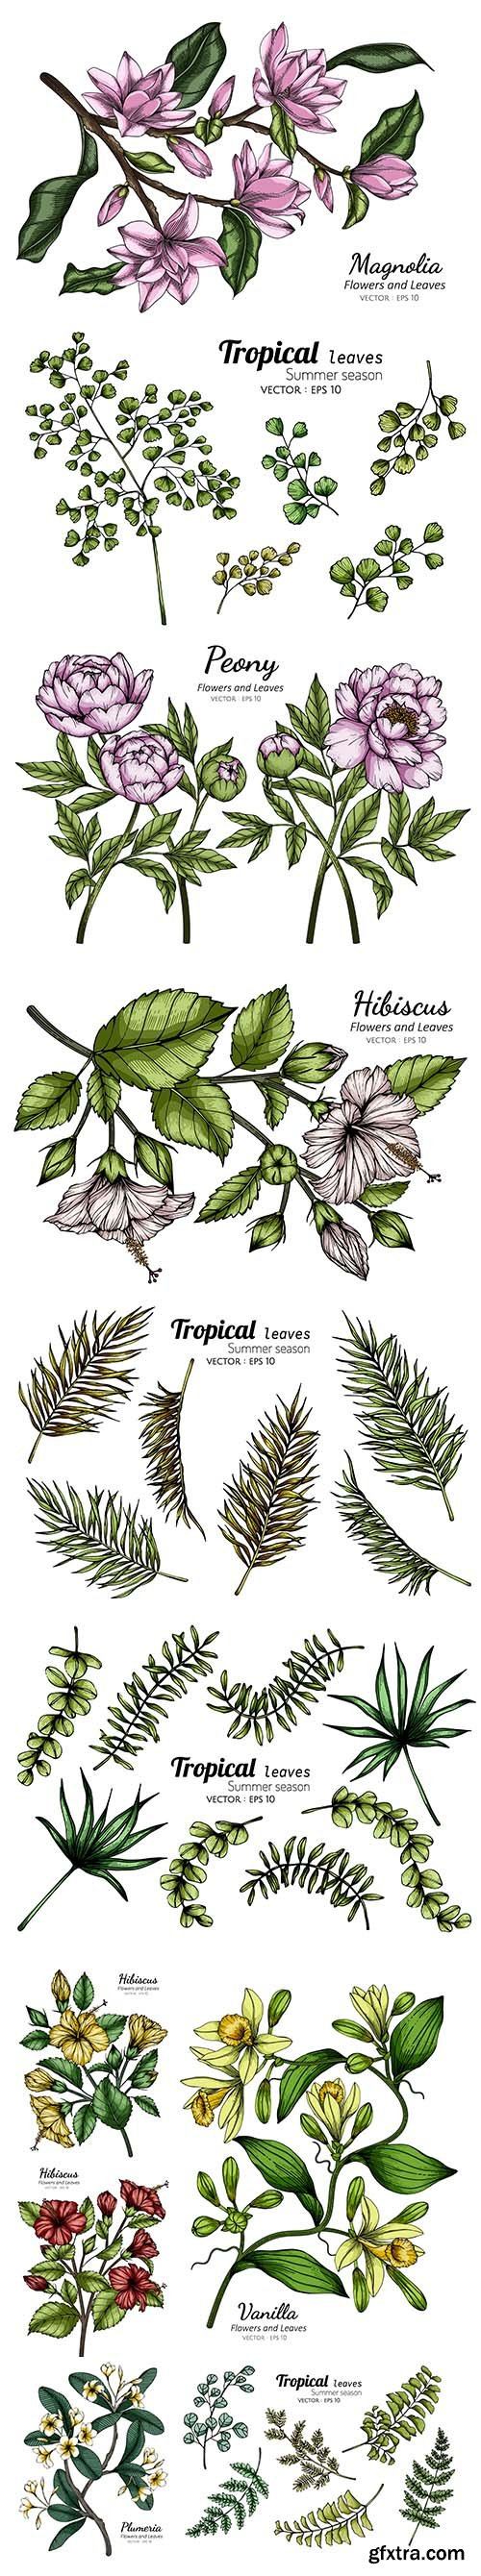 Collection of Tropical and other Leaf Drawing Illustration